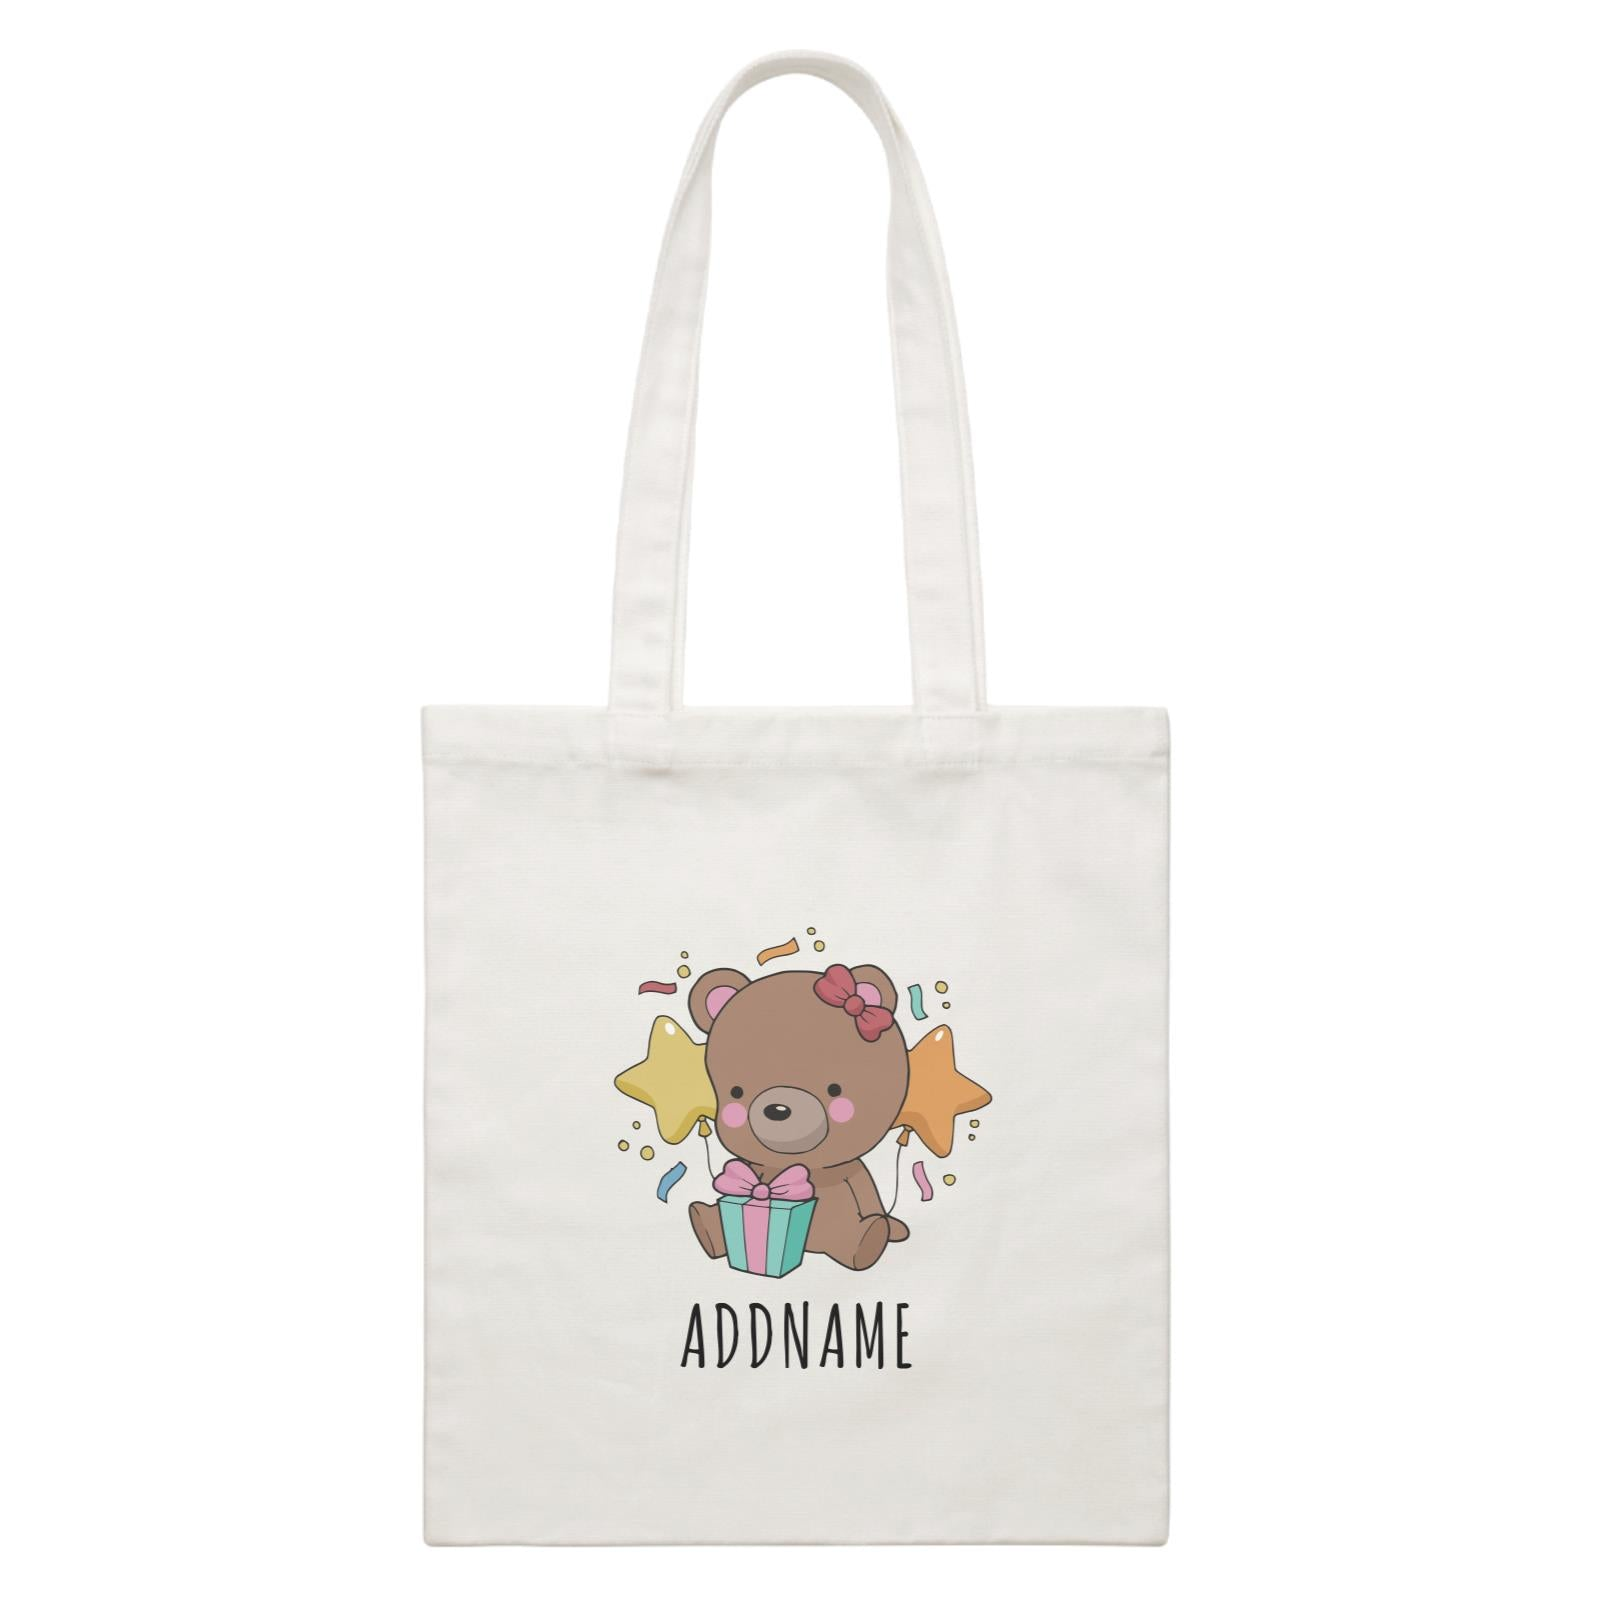 Birthday Sketch Animals Bear with Present Addname White Canvas Bag